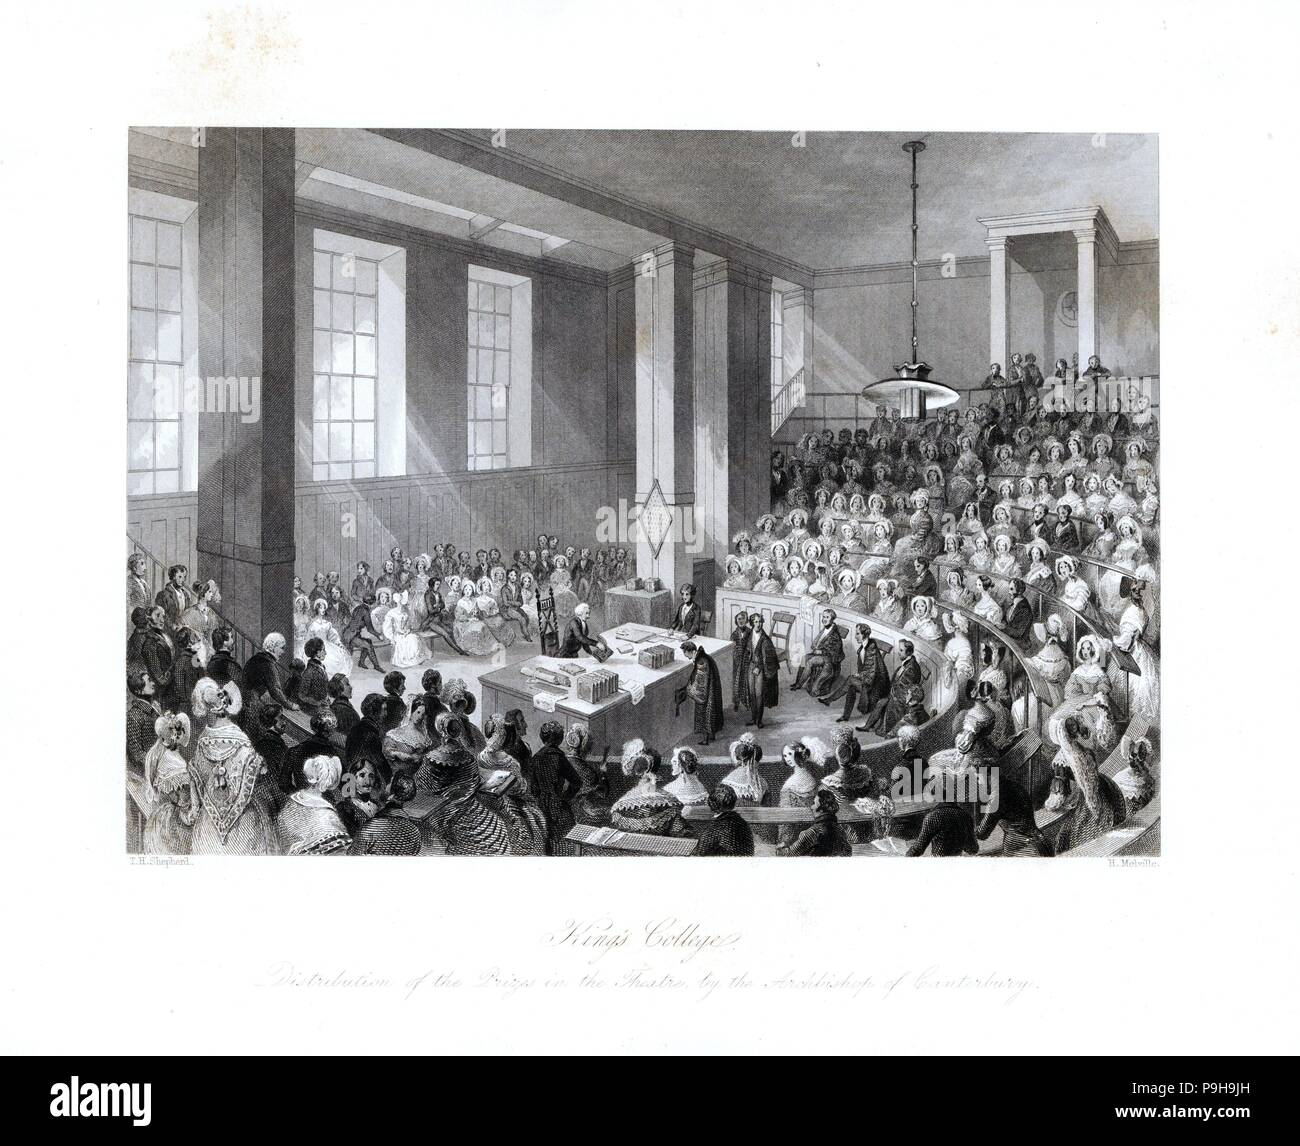 Distribution of prizes in the theatre at King's College by the Archbishop of Canterbury. Steel engraving by Henry Melville after an illustration by Thomas Hosmer Shepherd from London Interiors, Their Costumes and Ceremonies, Joshua Mead, London, 1841. - Stock Image